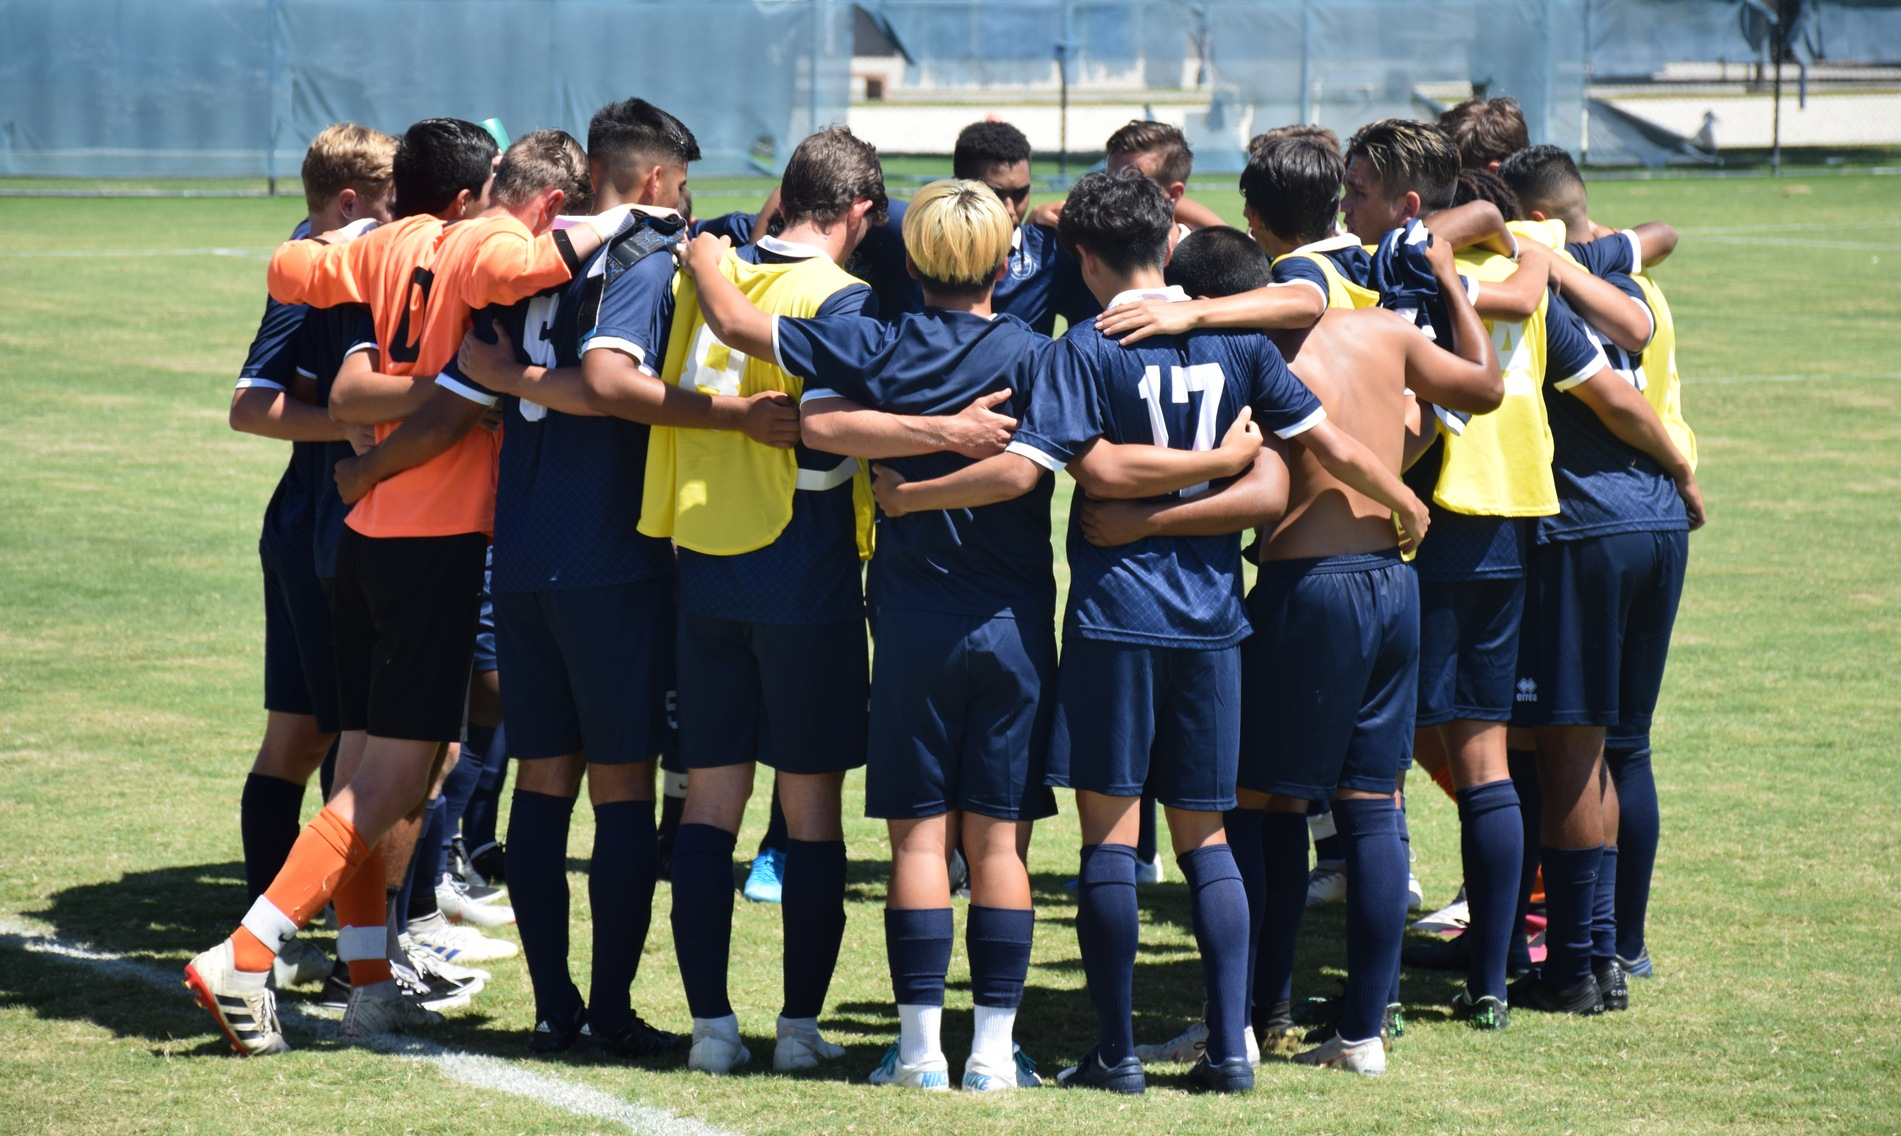 Men's soccer team drops tough contest on road at El Camino